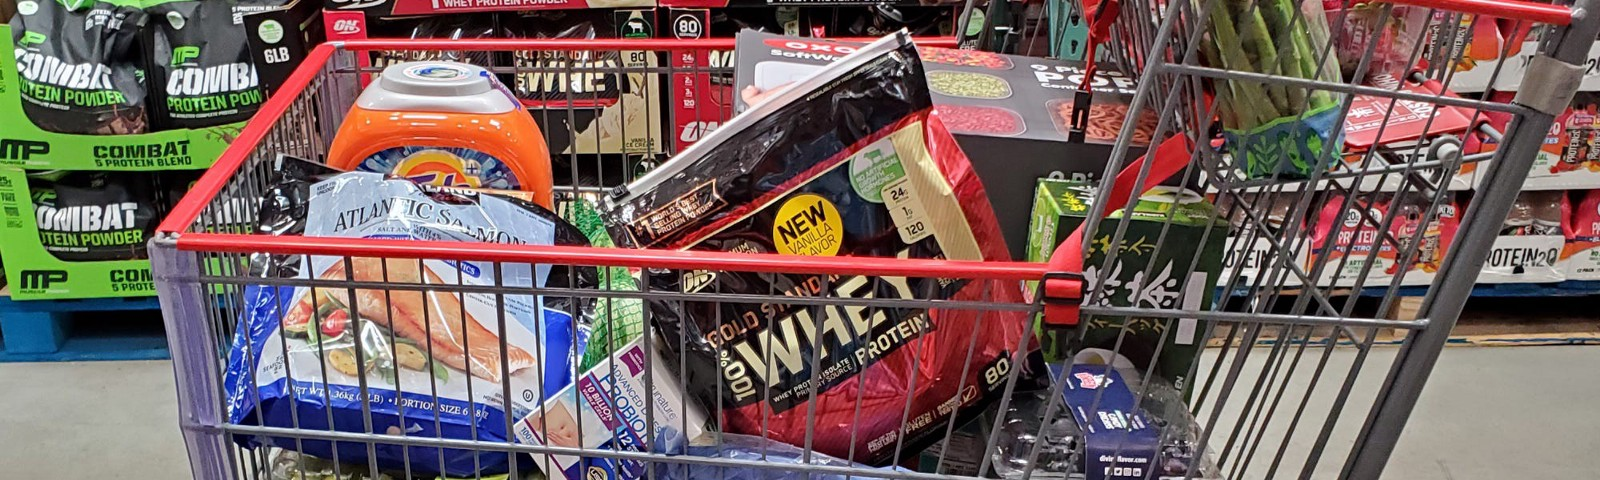 A Costco shopping cart filled with items.